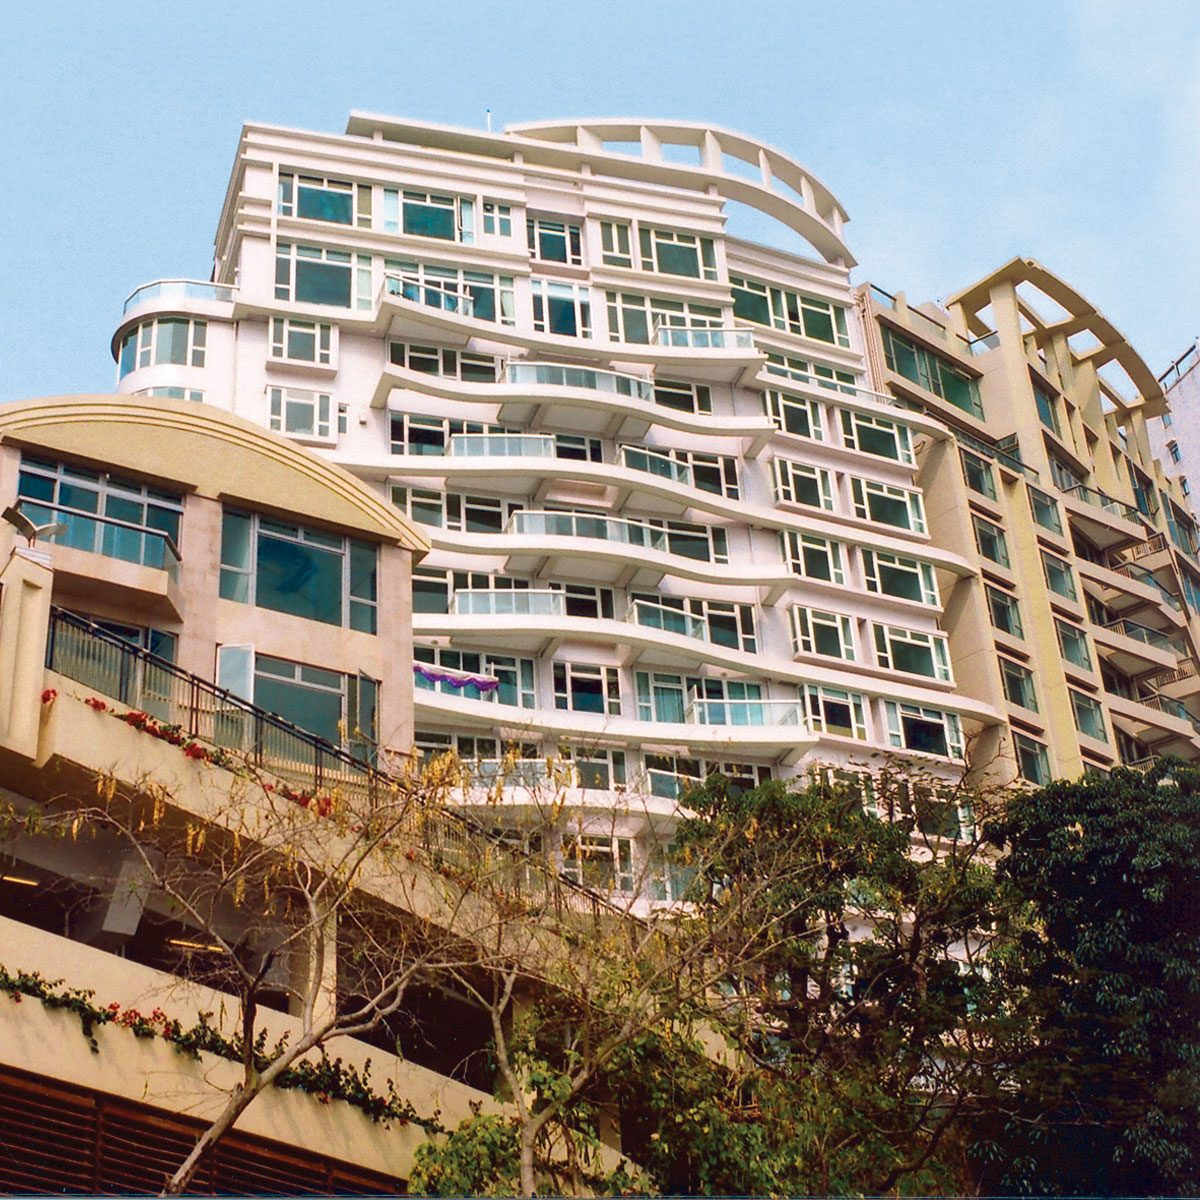 Villas Sorrento, Residential Development at 64-66 Mount Davis Road, Hong Kong